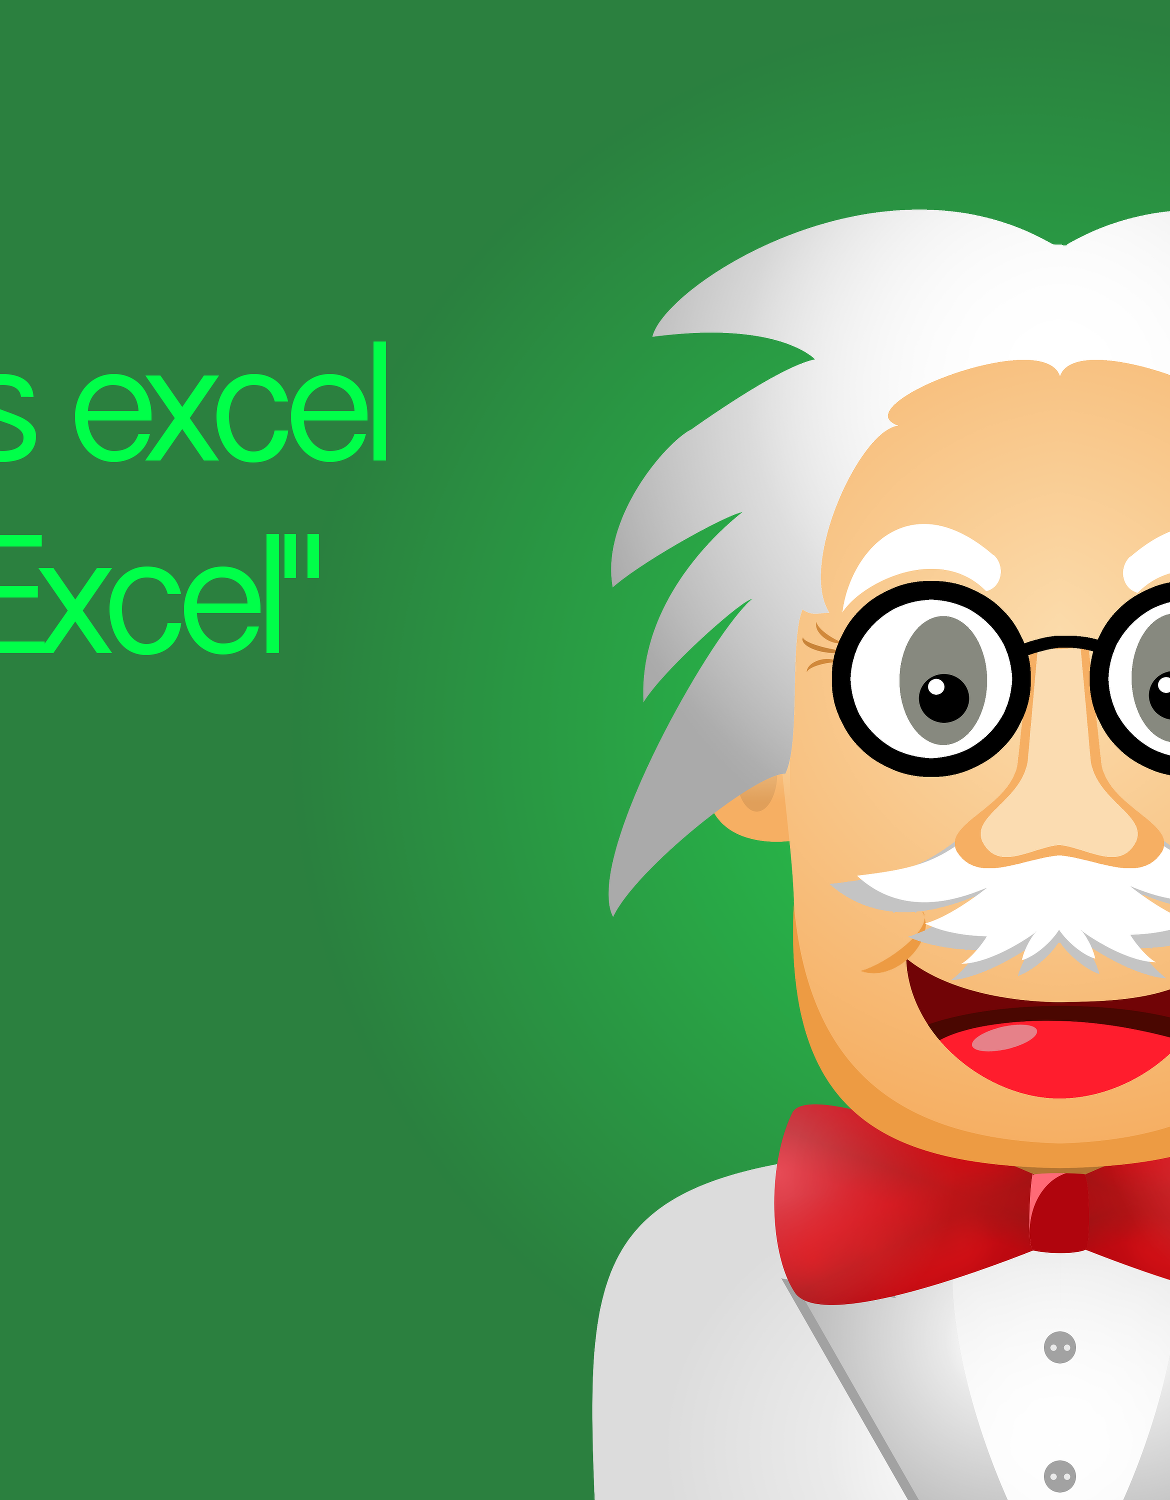 Merge Excel WorkbooksHow To Compare Two Files Or